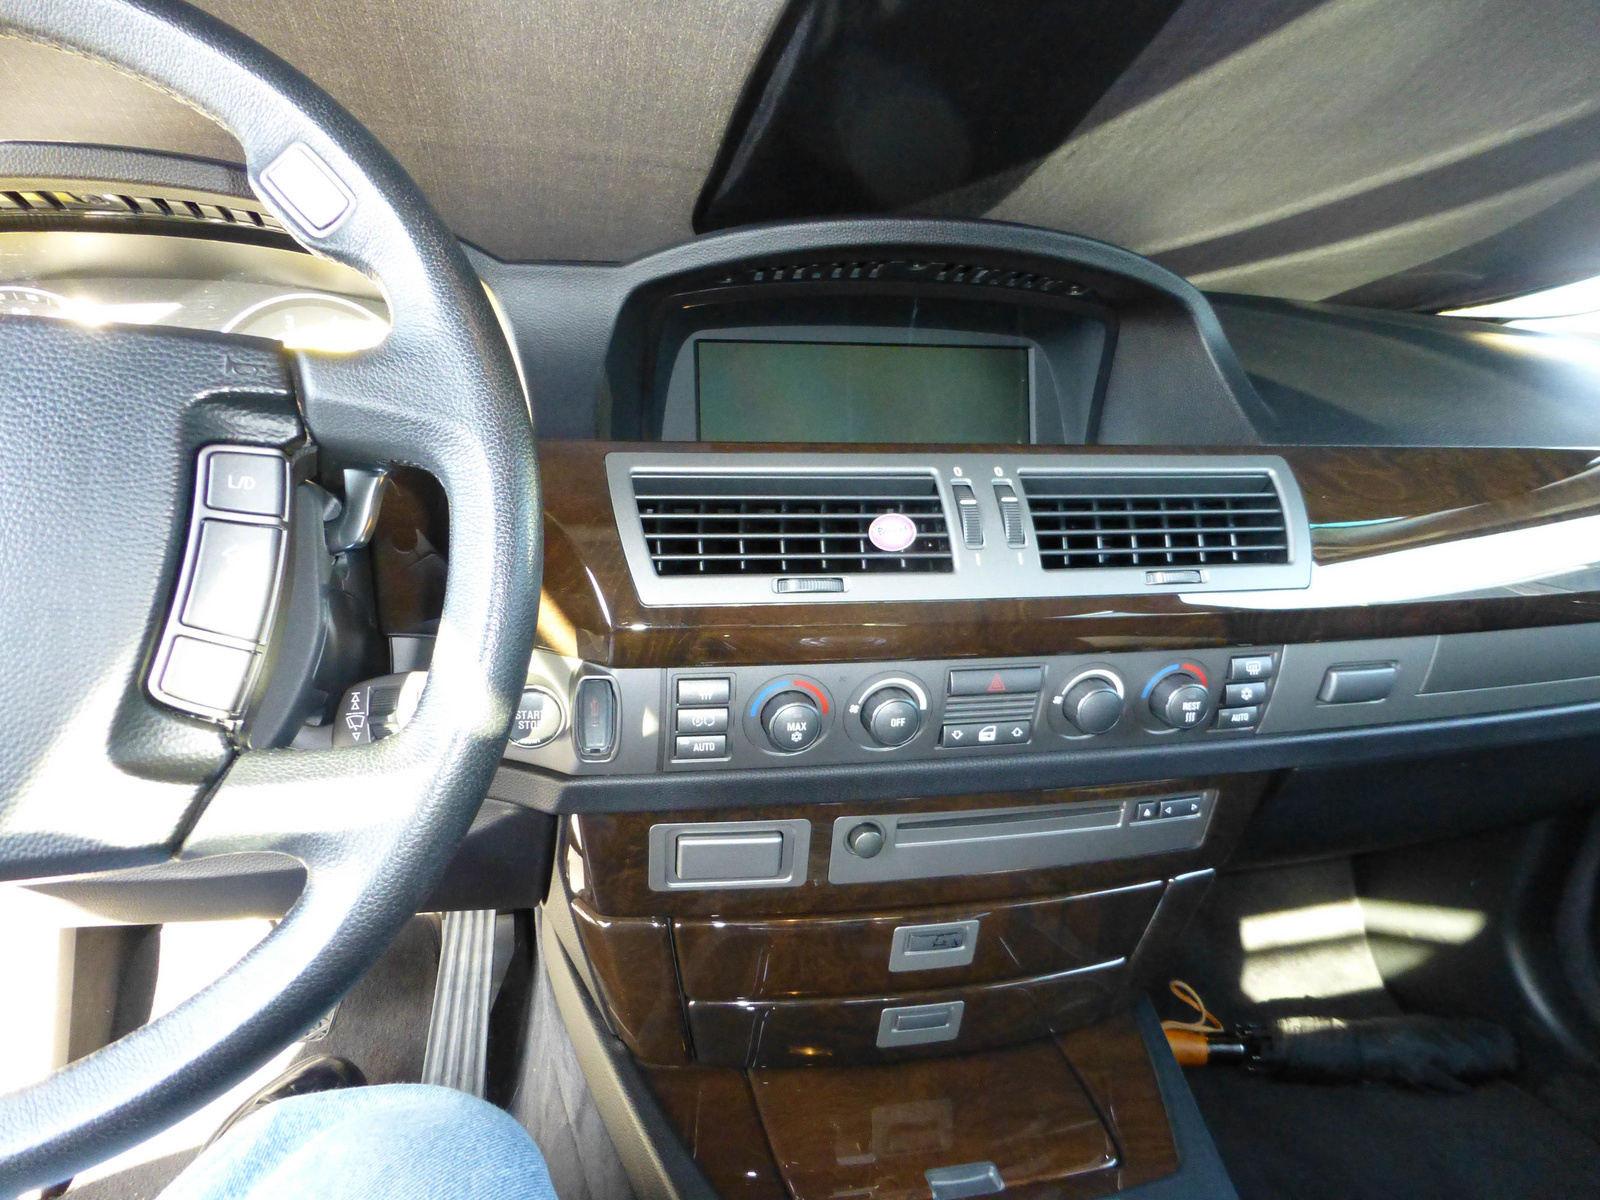 2002 Bmw 7 Series Interior Pictures Cargurus